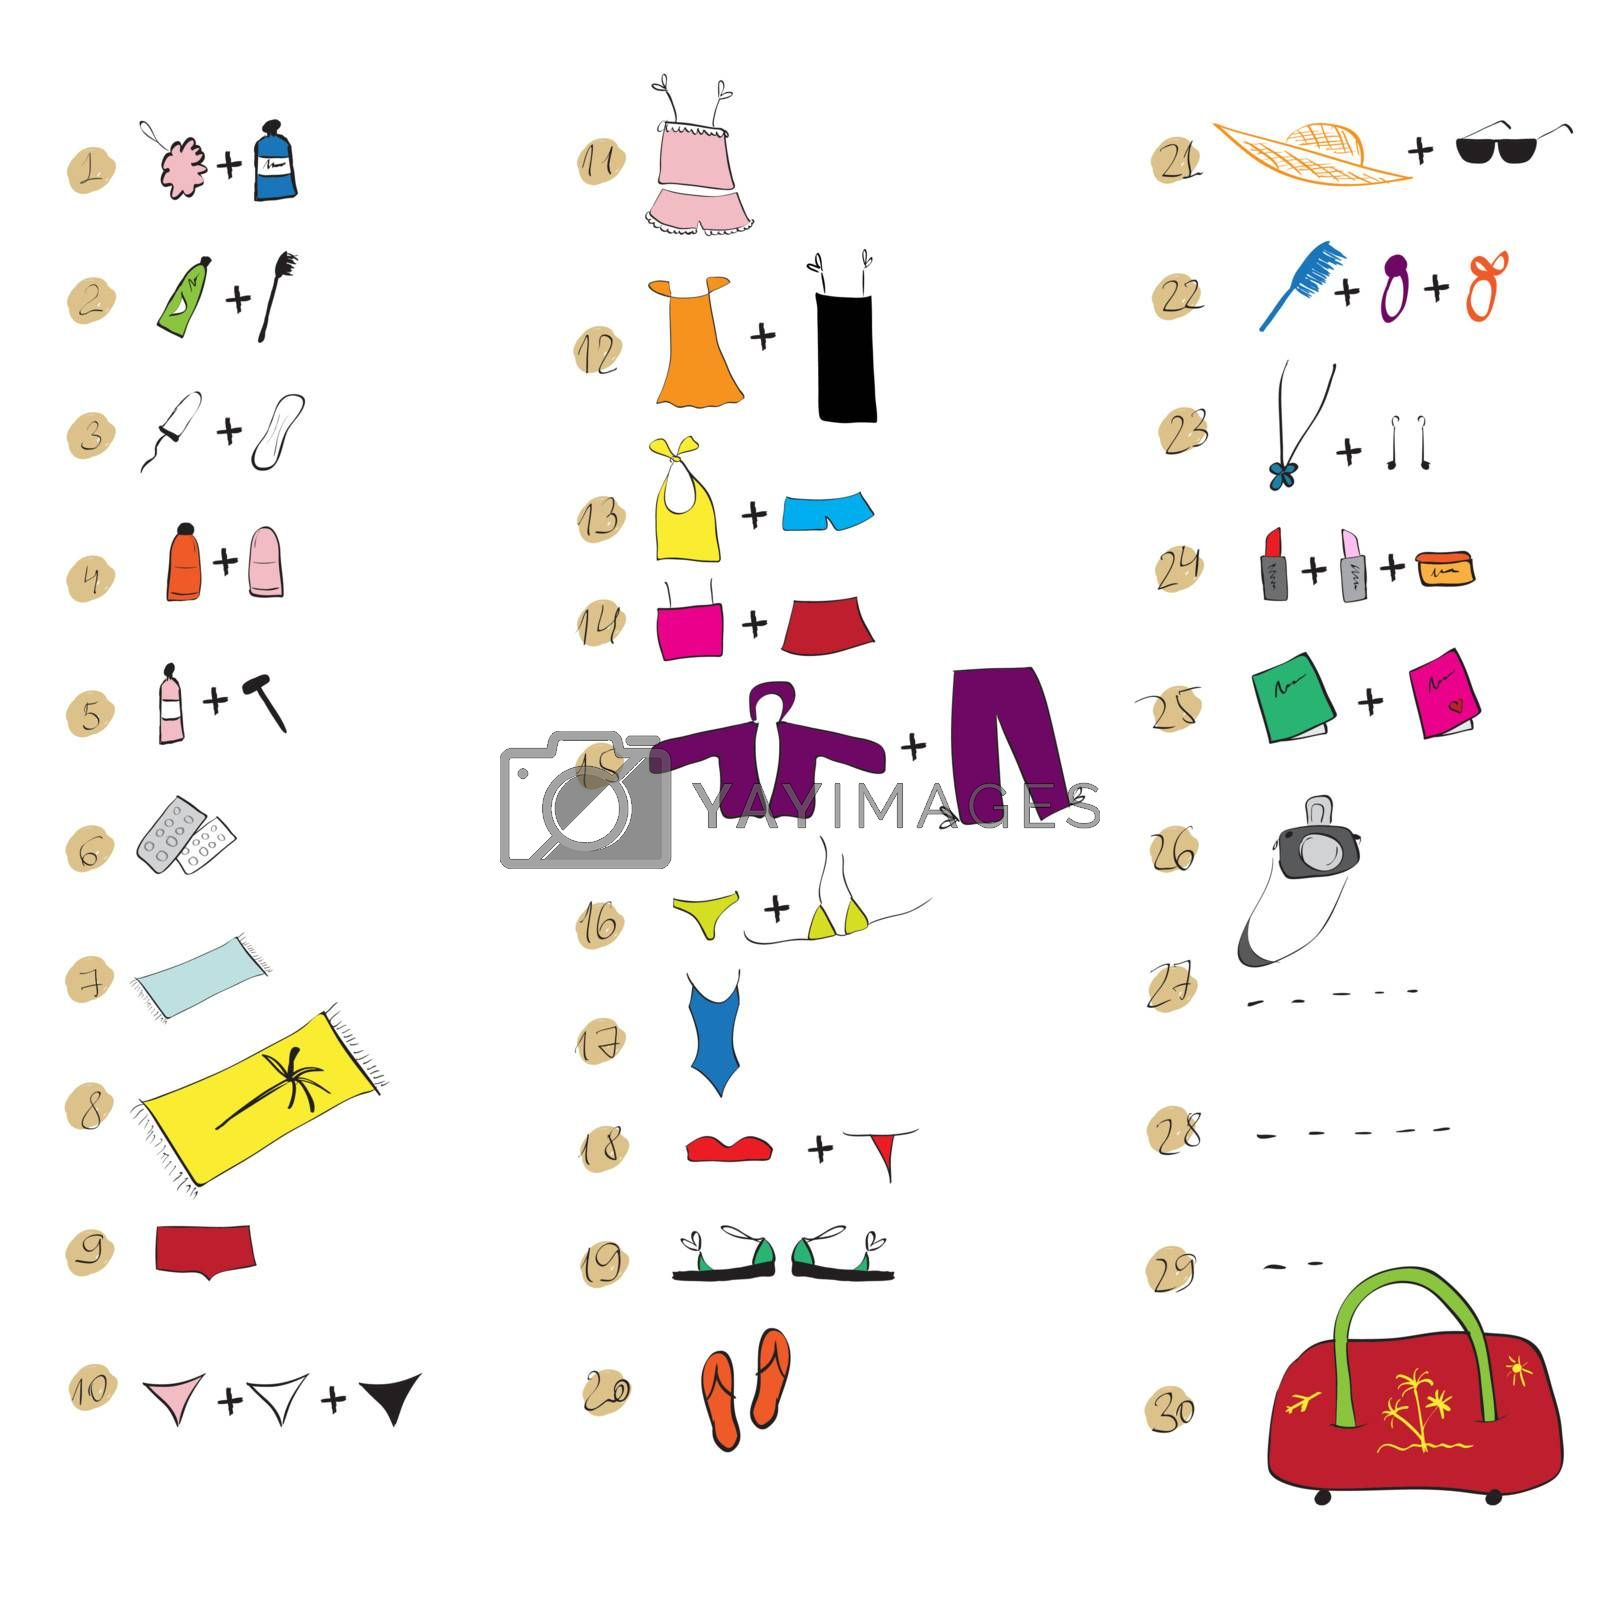 List of clothes for travel. See also similar work in my gallery